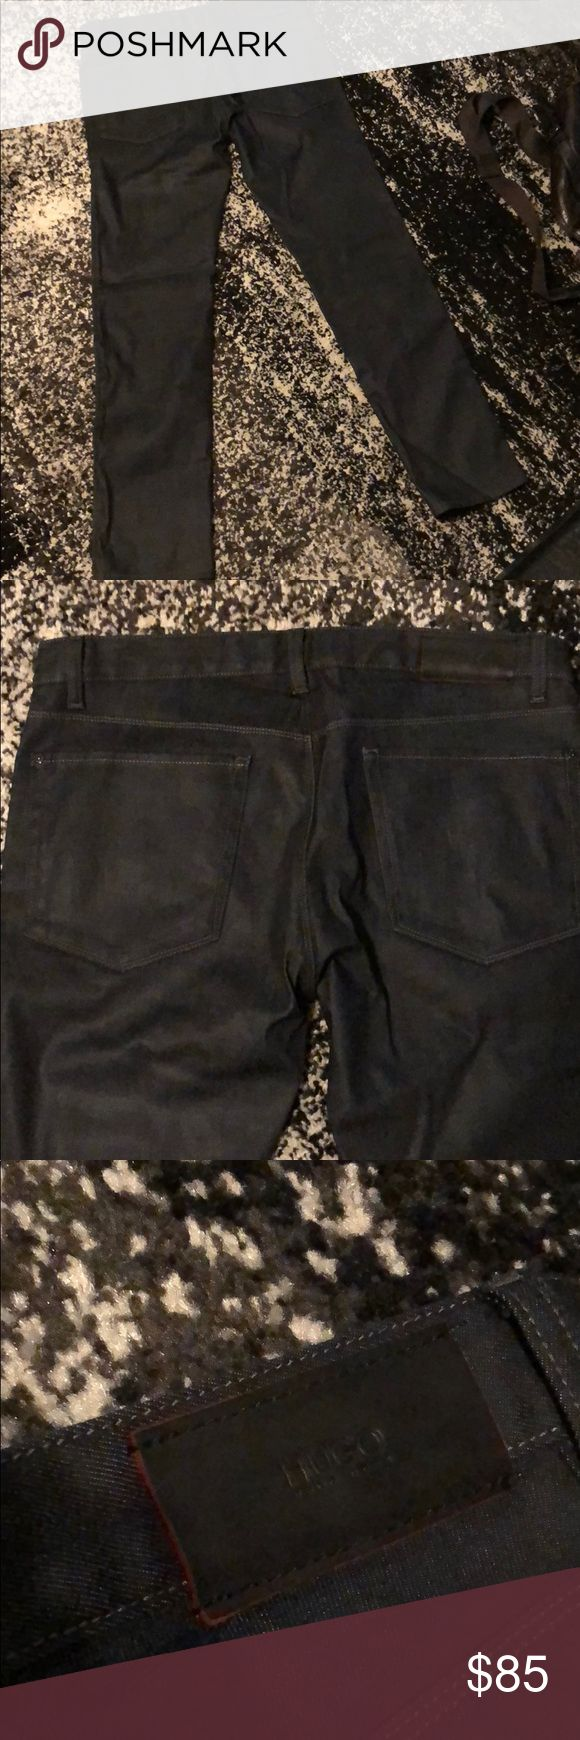 Hugo Boss Black/Grey Denim Jeans - 34 👖 Inside tags were cut off due to discomfort. Material is thicker, almost wax-like. Hugo Boss Jeans